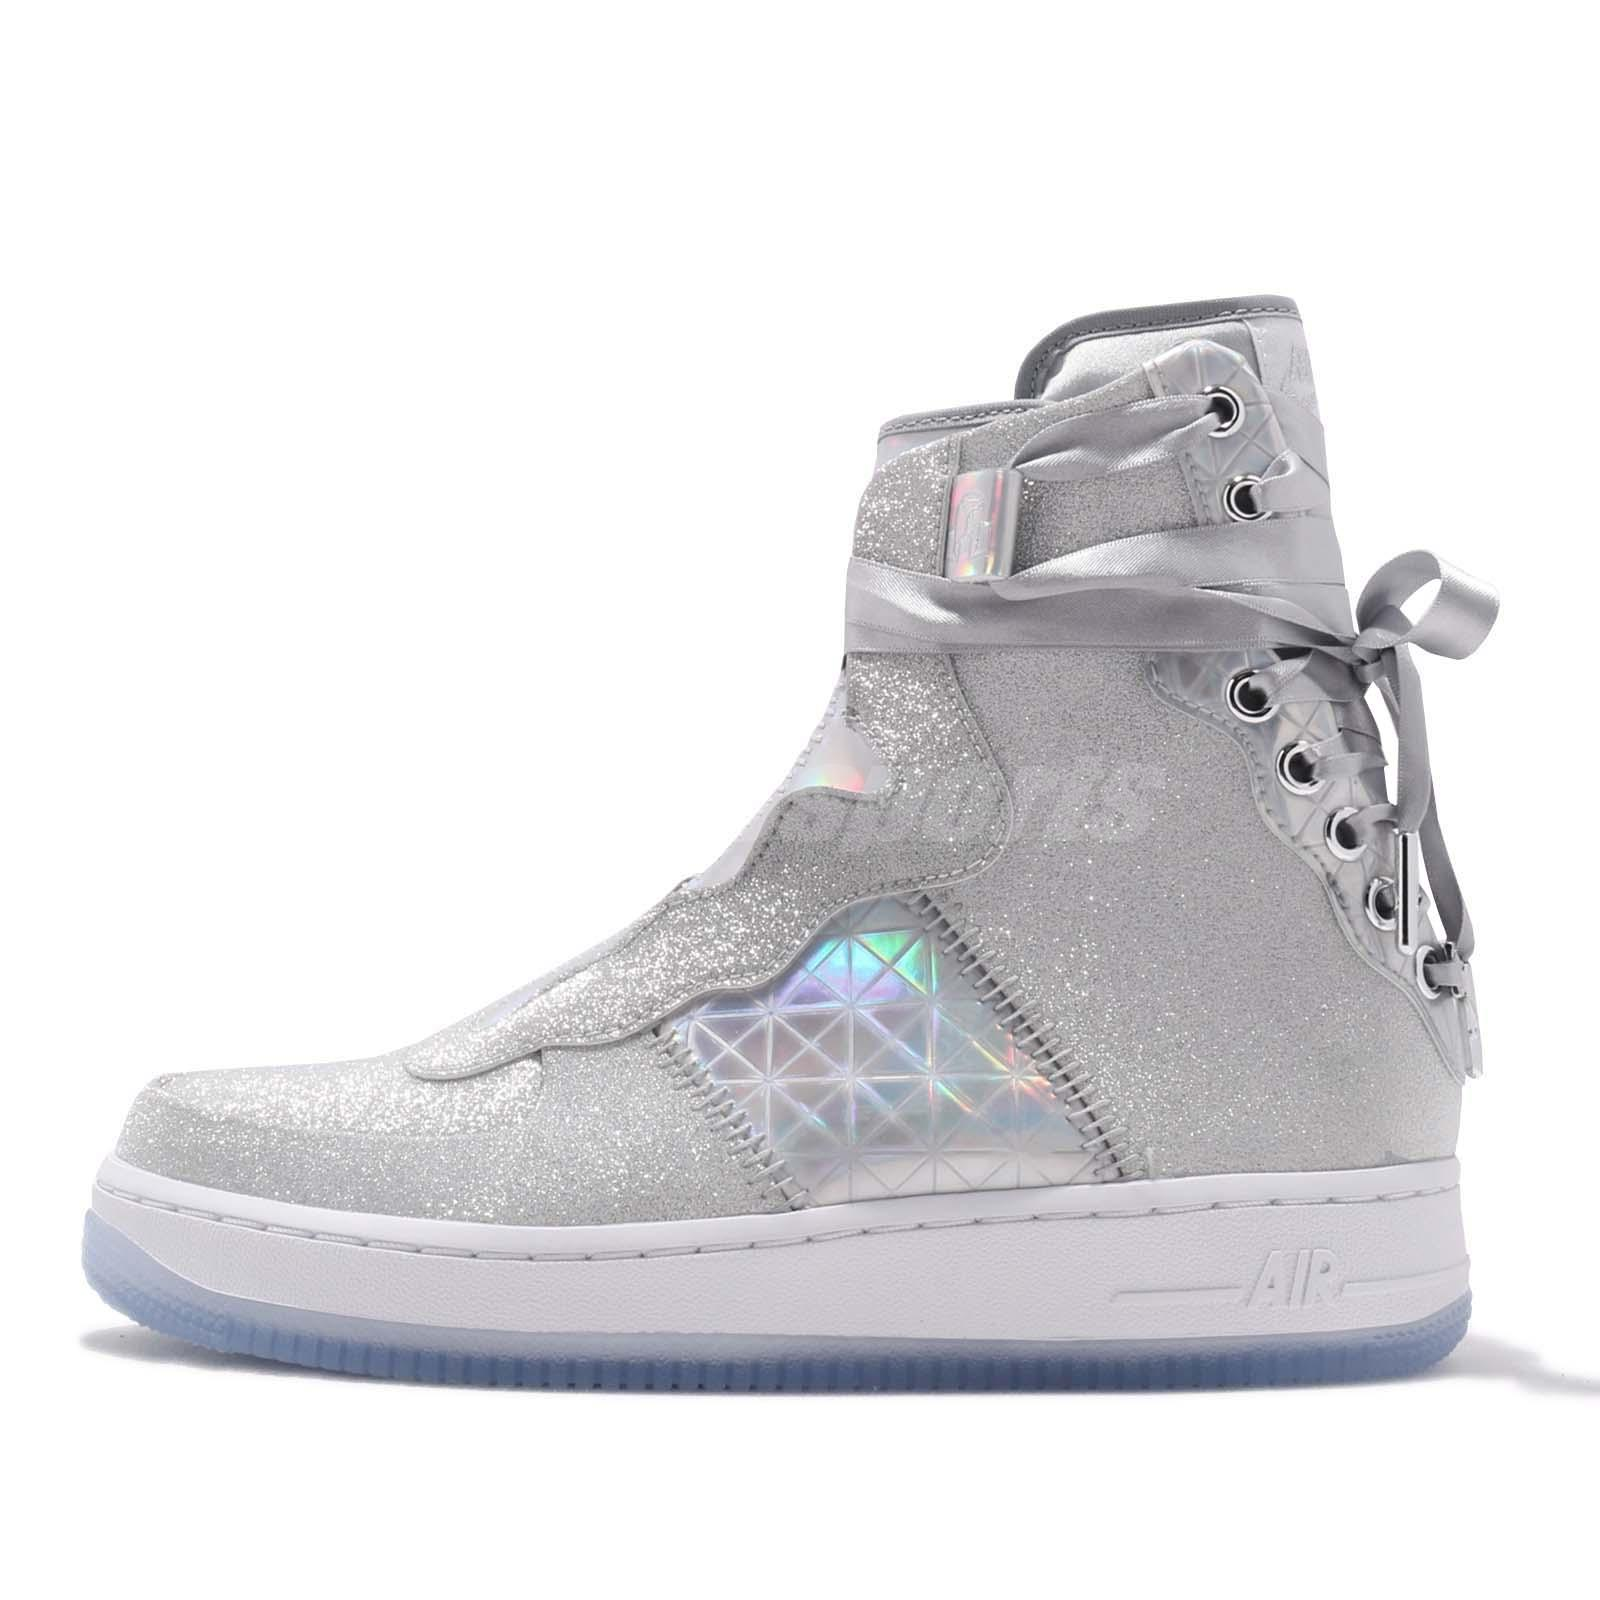 27a4f3d33bde Nike Wmns AF1 REBEL XX Air Force 1 Silver Women Casual Shoes Sneakers  BV7344-090